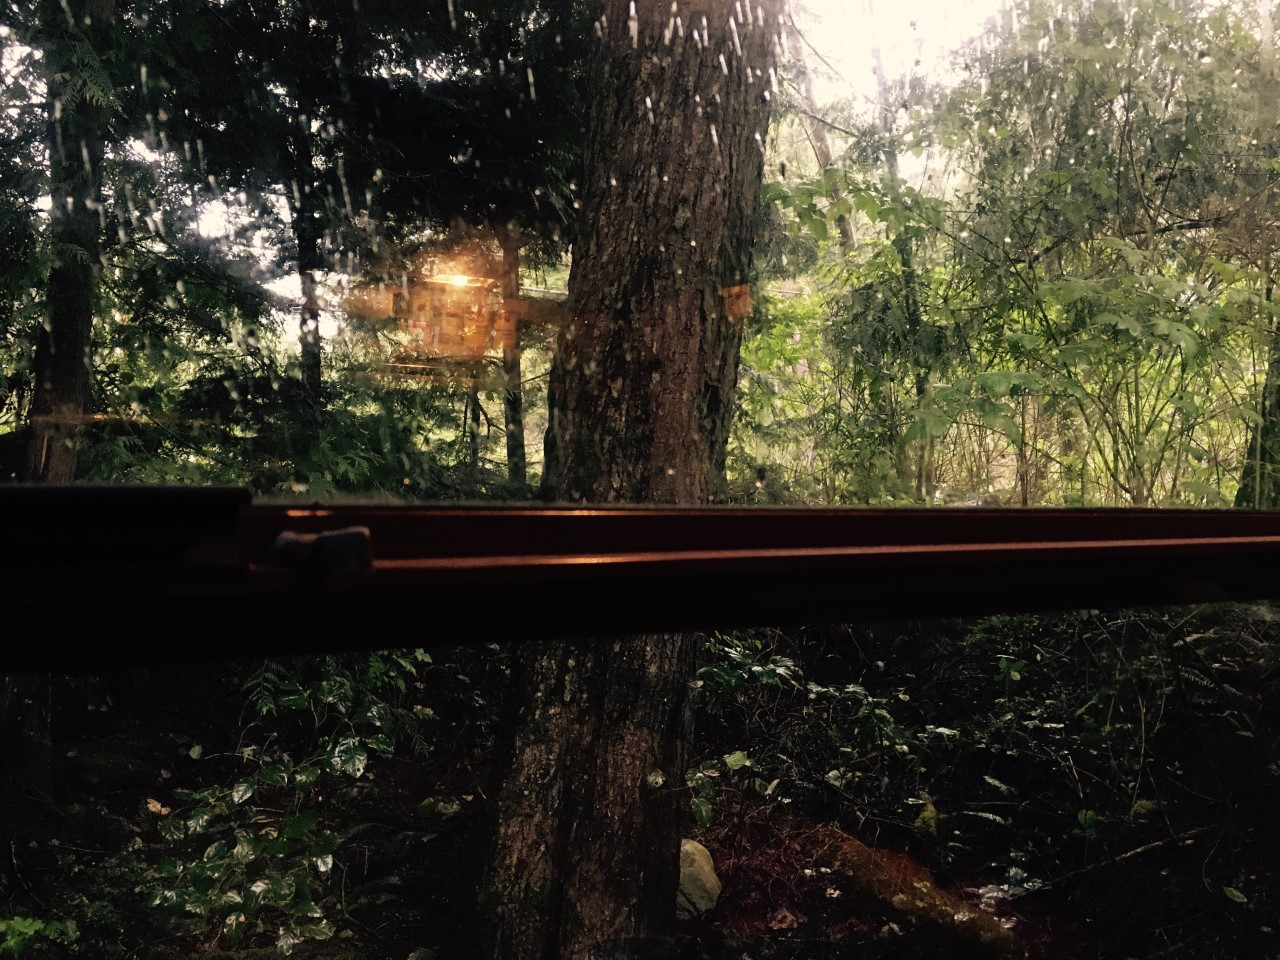 Carly Butler's view from her trailer window (Tofino, BC, Canada) aTE Archive. (Image credit Carly Butler 2017).